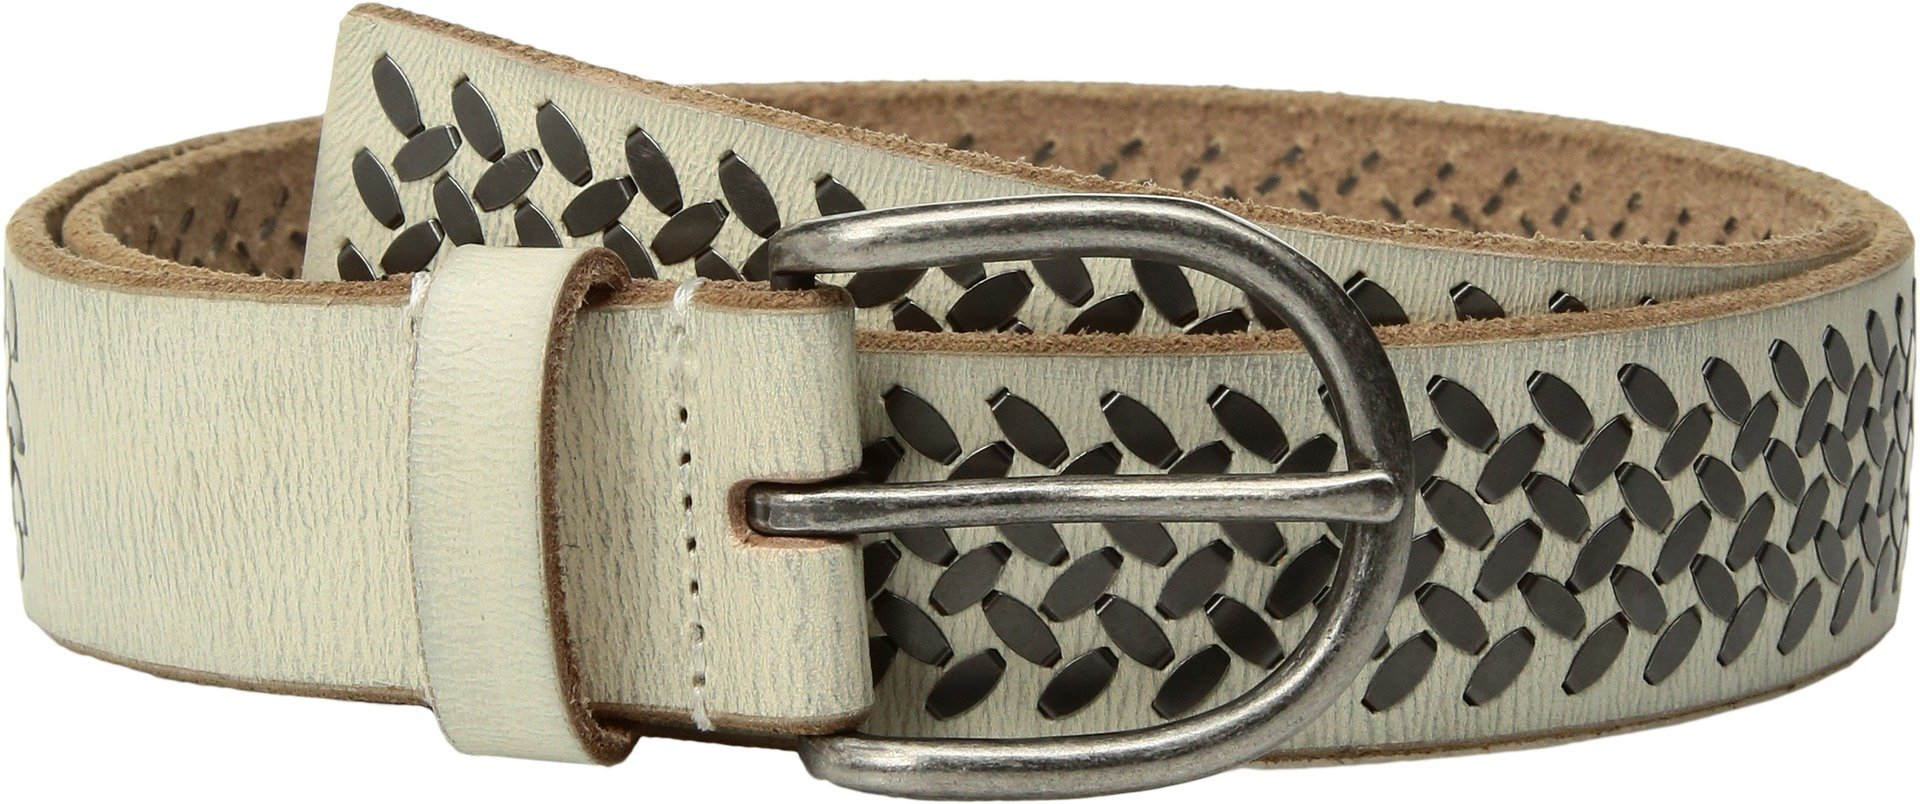 Amsterdam Heritage Women's 35024 White Belt by Amsterdam Heritage